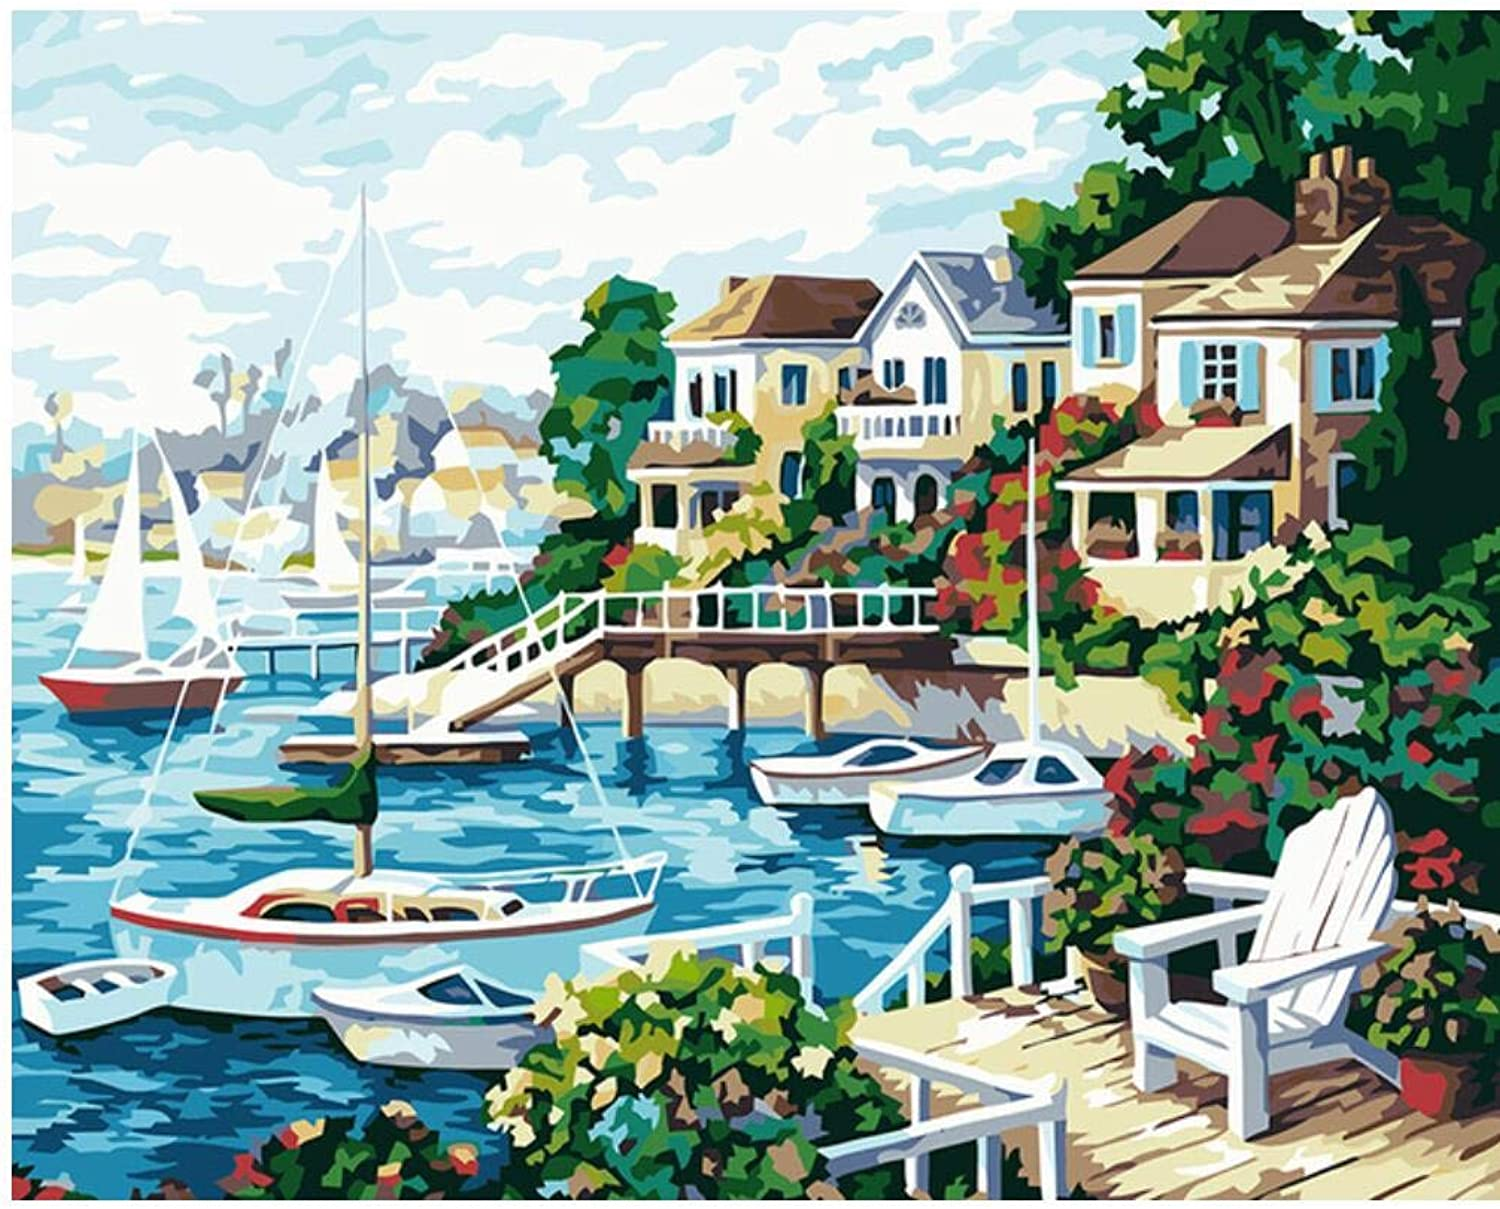 Superlucky Seascape Home Picture Painting Painting Painting by Numbers Home Decor DIY Canvas Oil Paintng for Living Room Wall Art 40x50cm Mit Rahmen B07JVMFF79 | Sehen Sie die Welt aus der Perspektive des Kindes  1d39b4